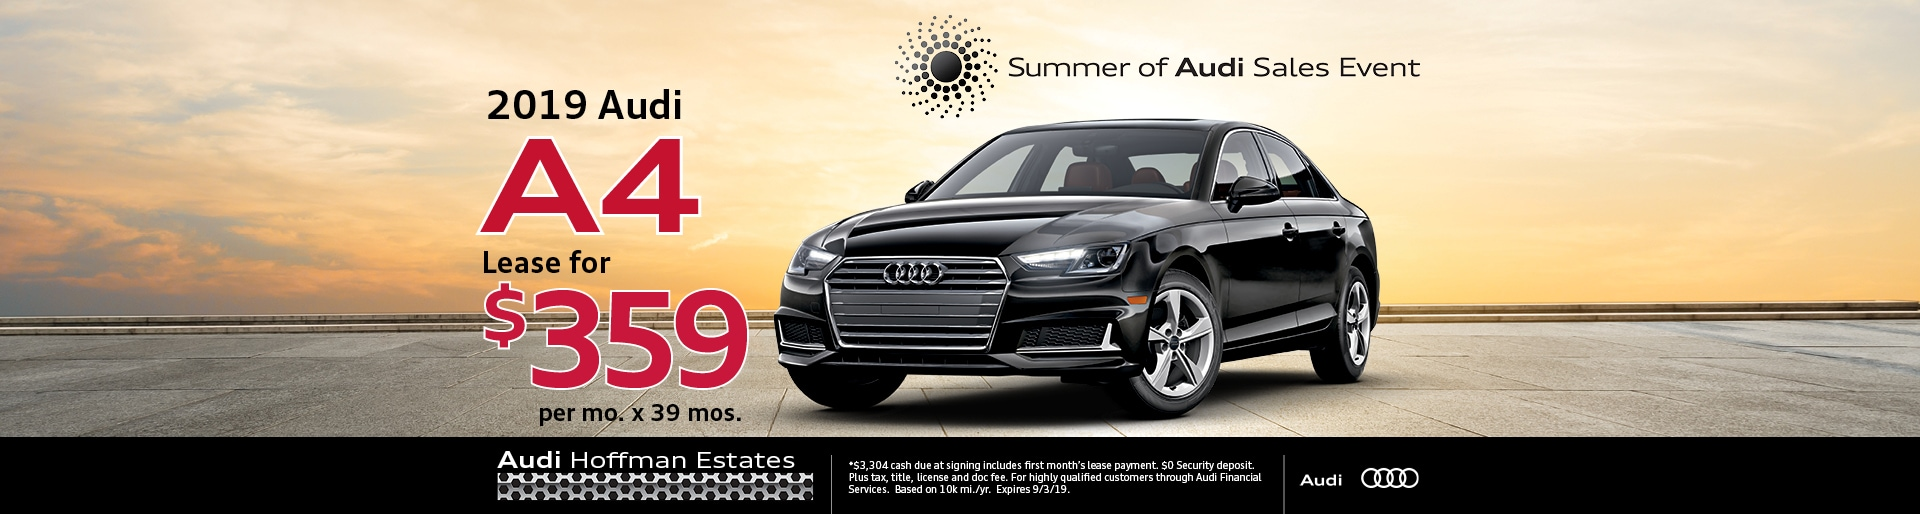 Audi Dealer near St  Charles - New & Used Cars | Audi Hoffman Estates